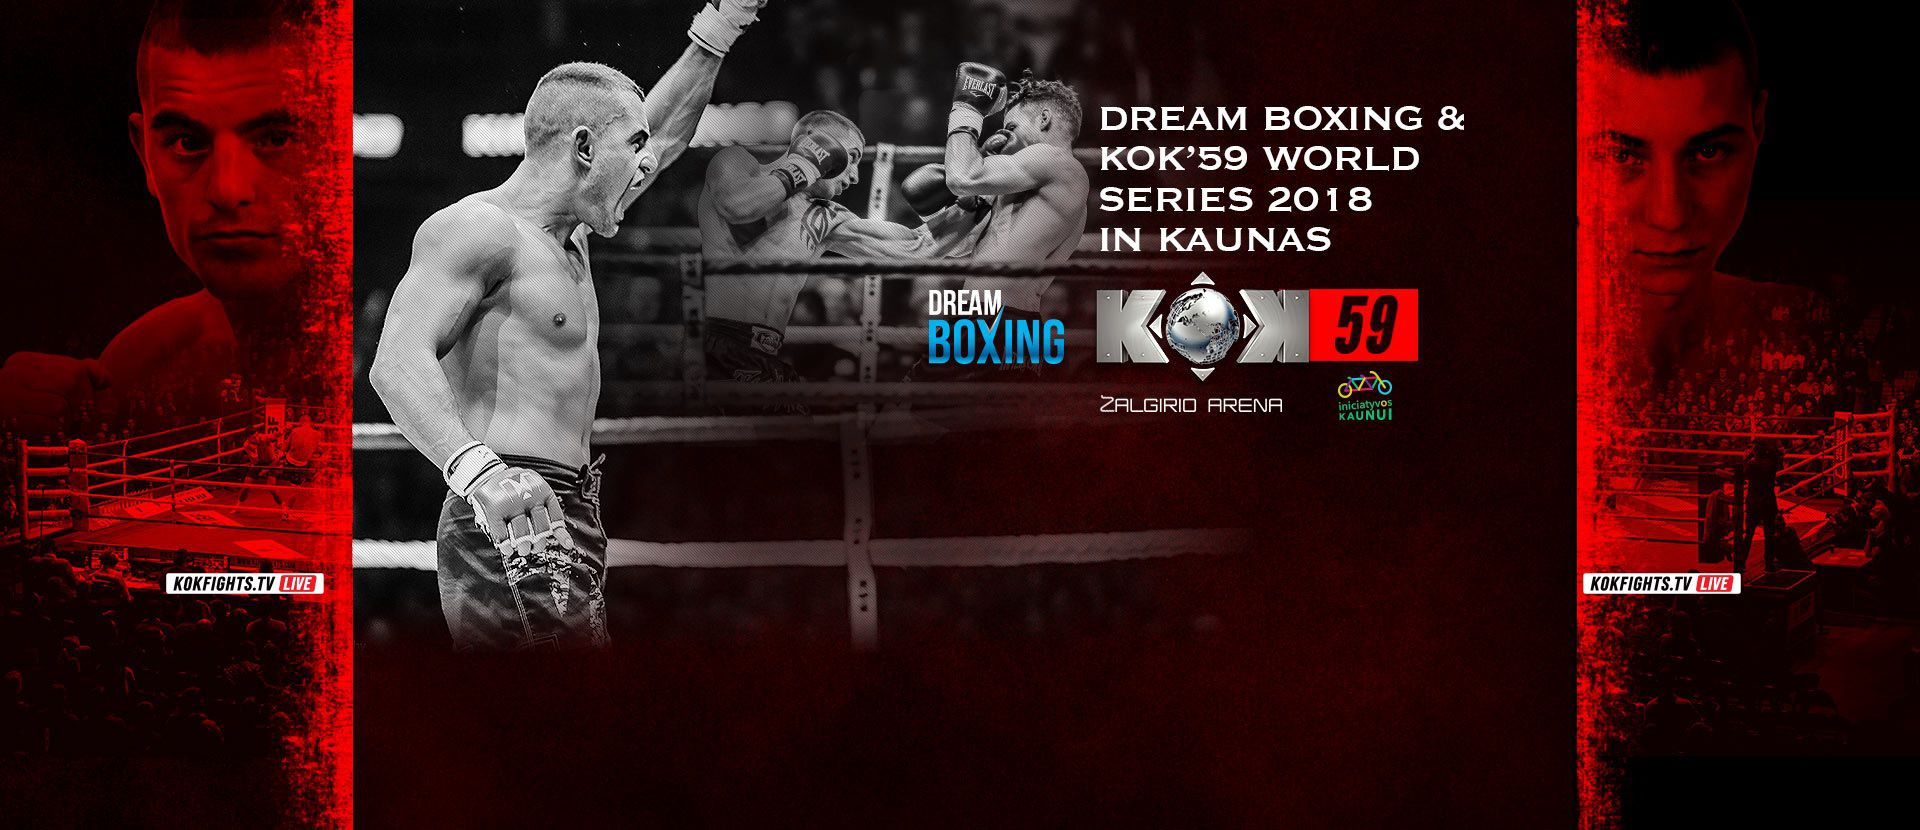 DREAM BOXING AND KOK`59 WORLD SERIES 2018 IN KAUNAS